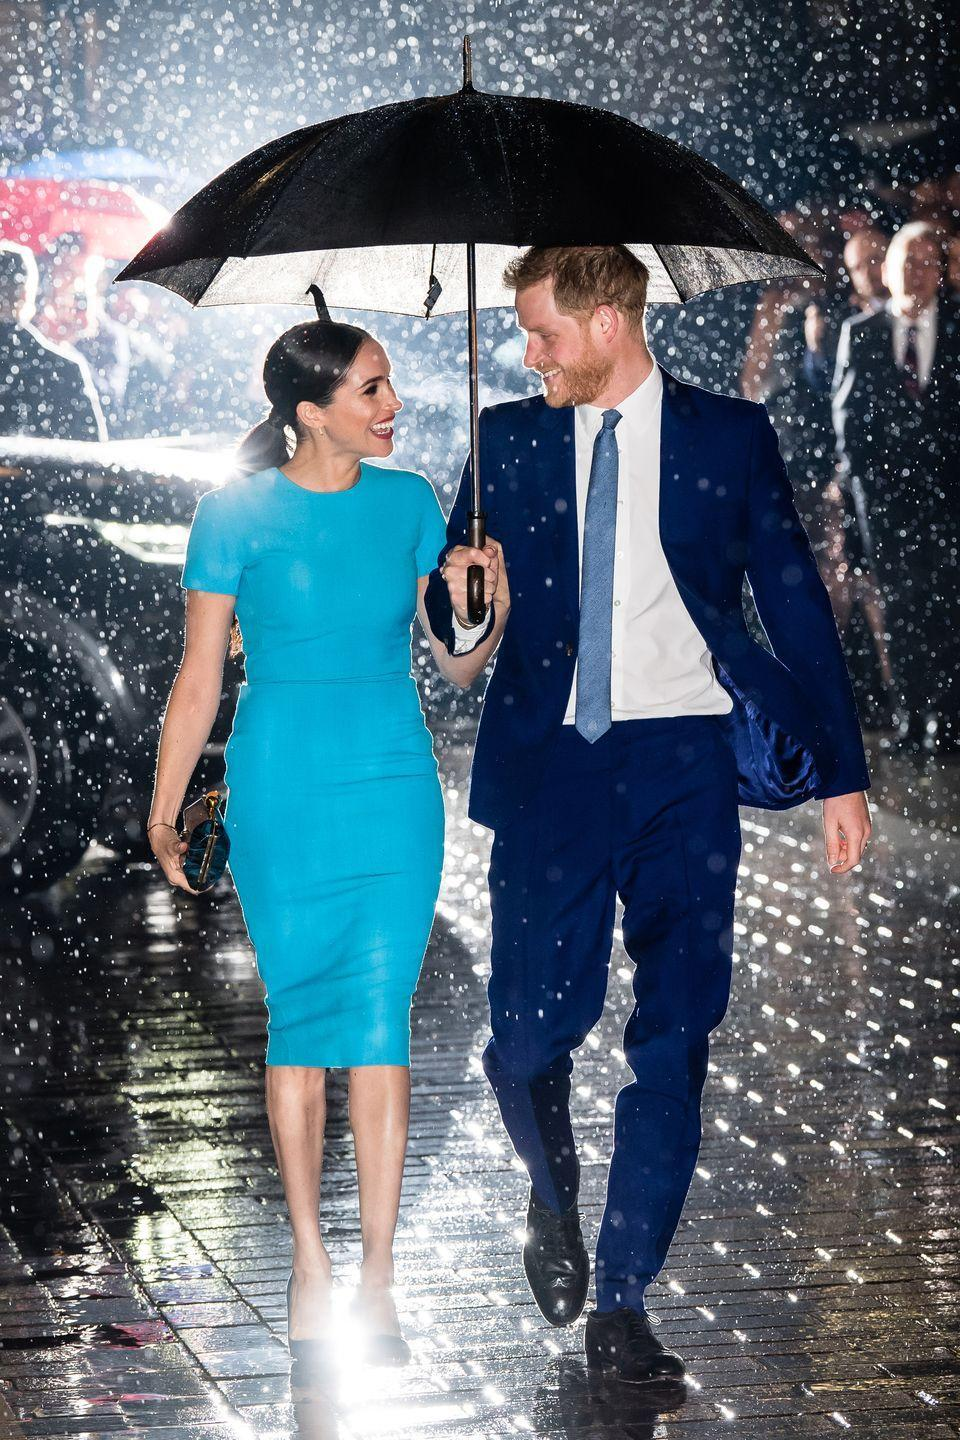 <p>A perfectly timed shot features the royal couple smiling brightly at each other in the rain during their appearance at The Endeavour Fund Awards at Mansion House.</p>